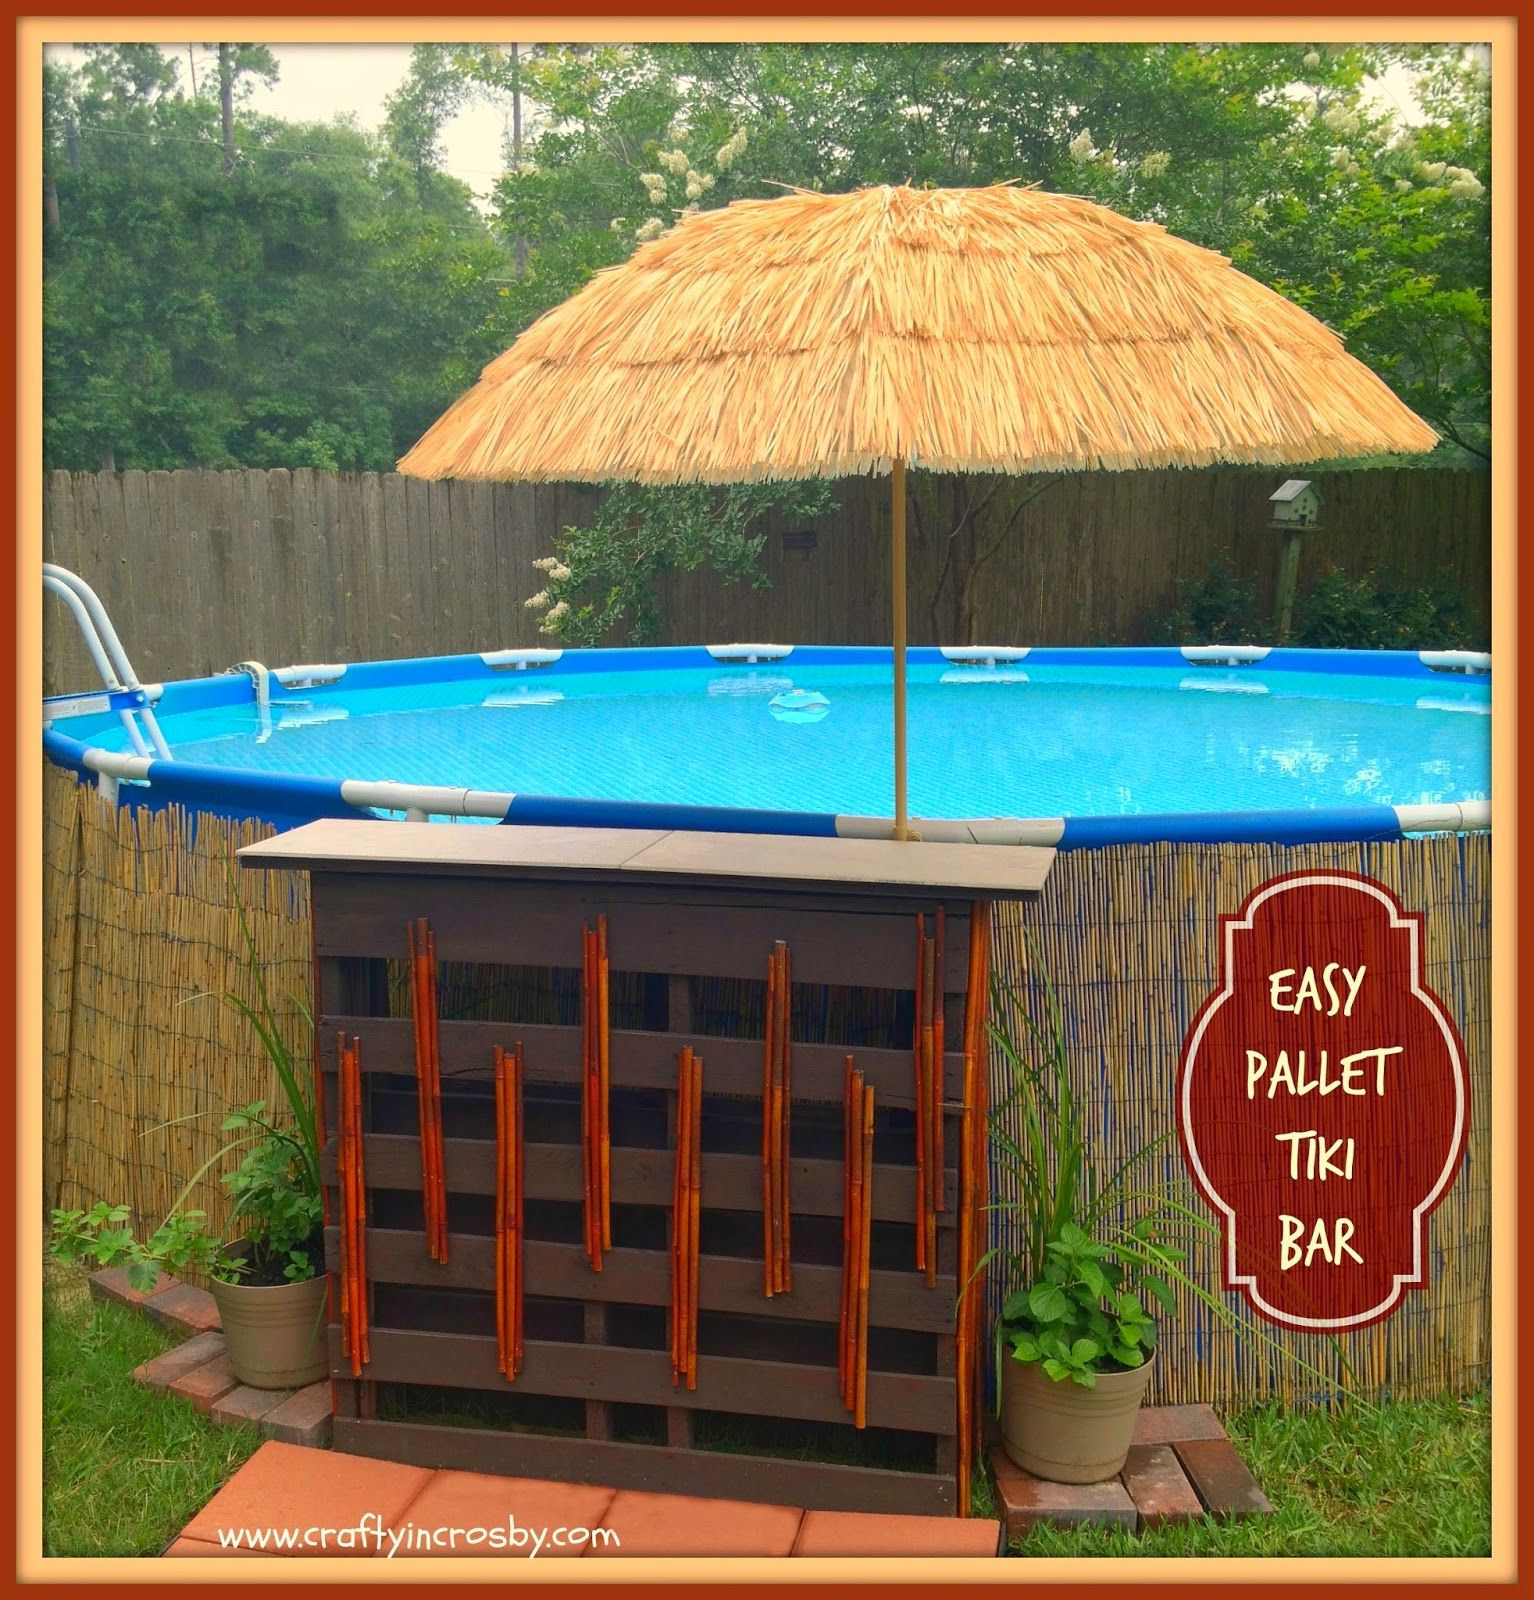 Pool Tiki Bar Ideas tiki bar ideas for the backyard patio and pool area http Diy Pallet Tiki Bar Feature Of The Day